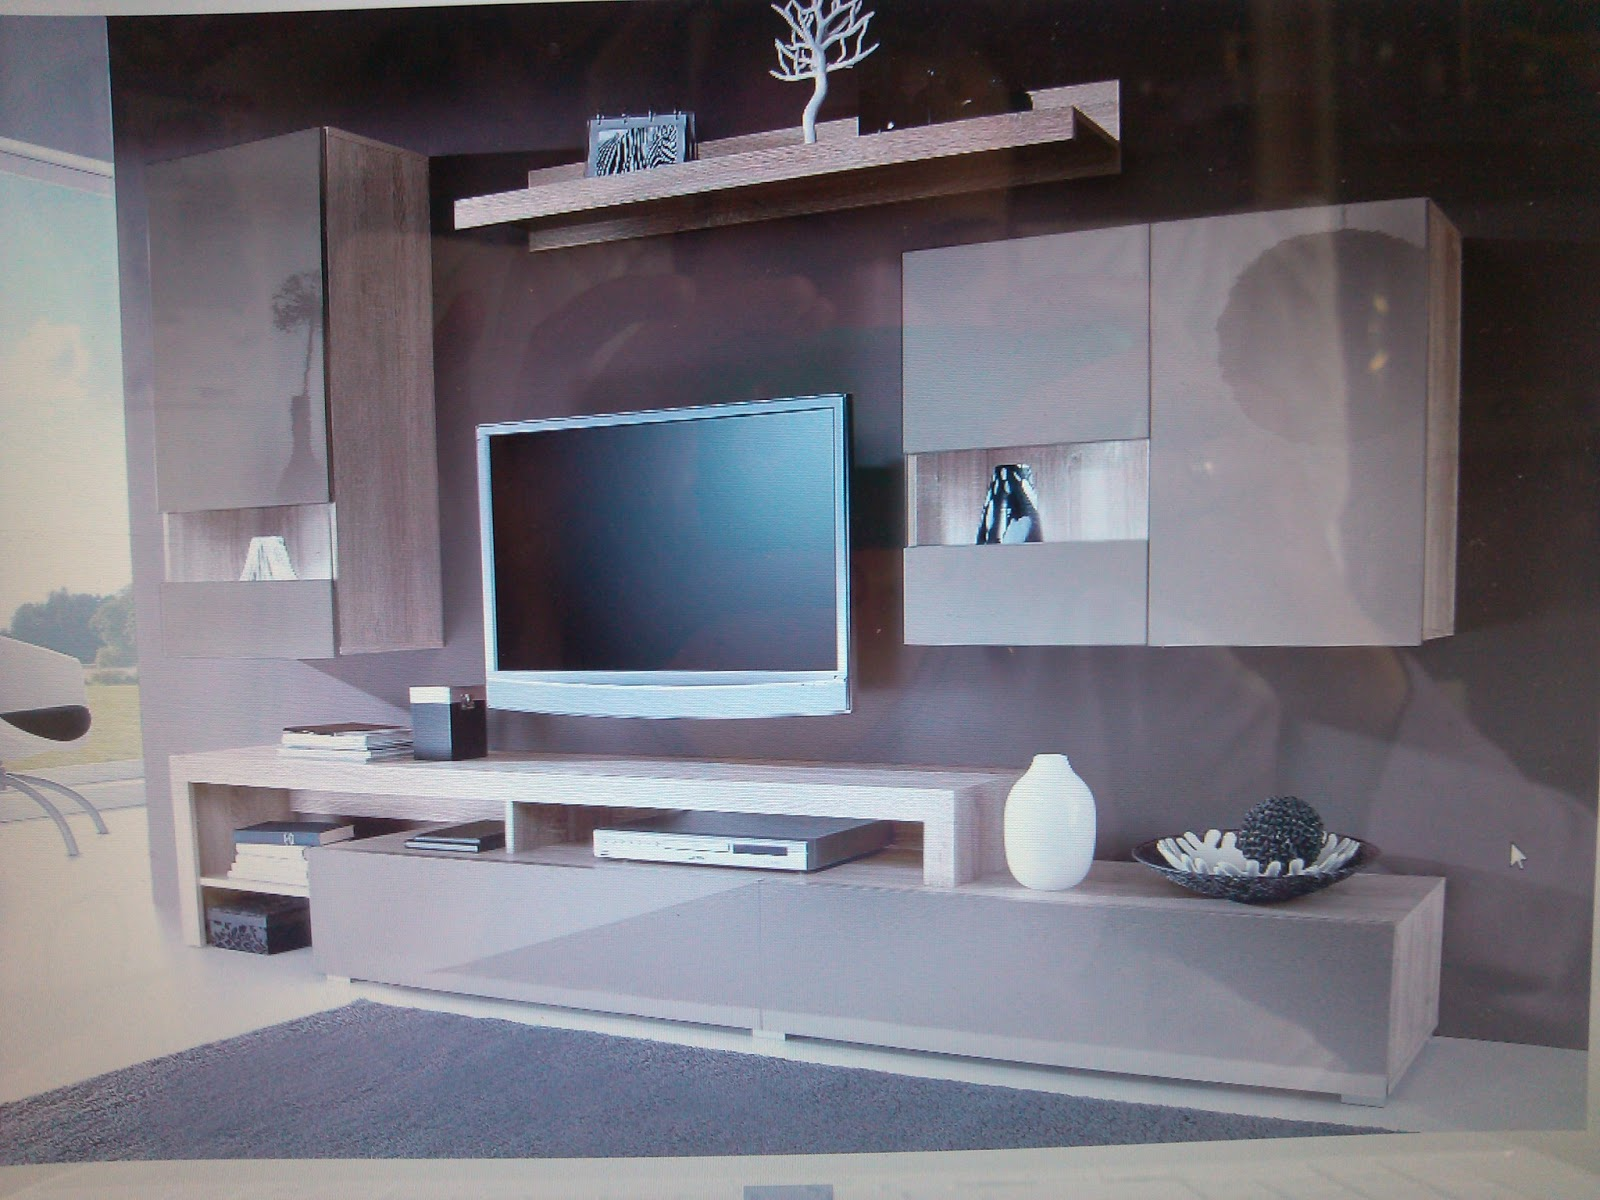 blog von aga und chrissi wohnzimmer. Black Bedroom Furniture Sets. Home Design Ideas